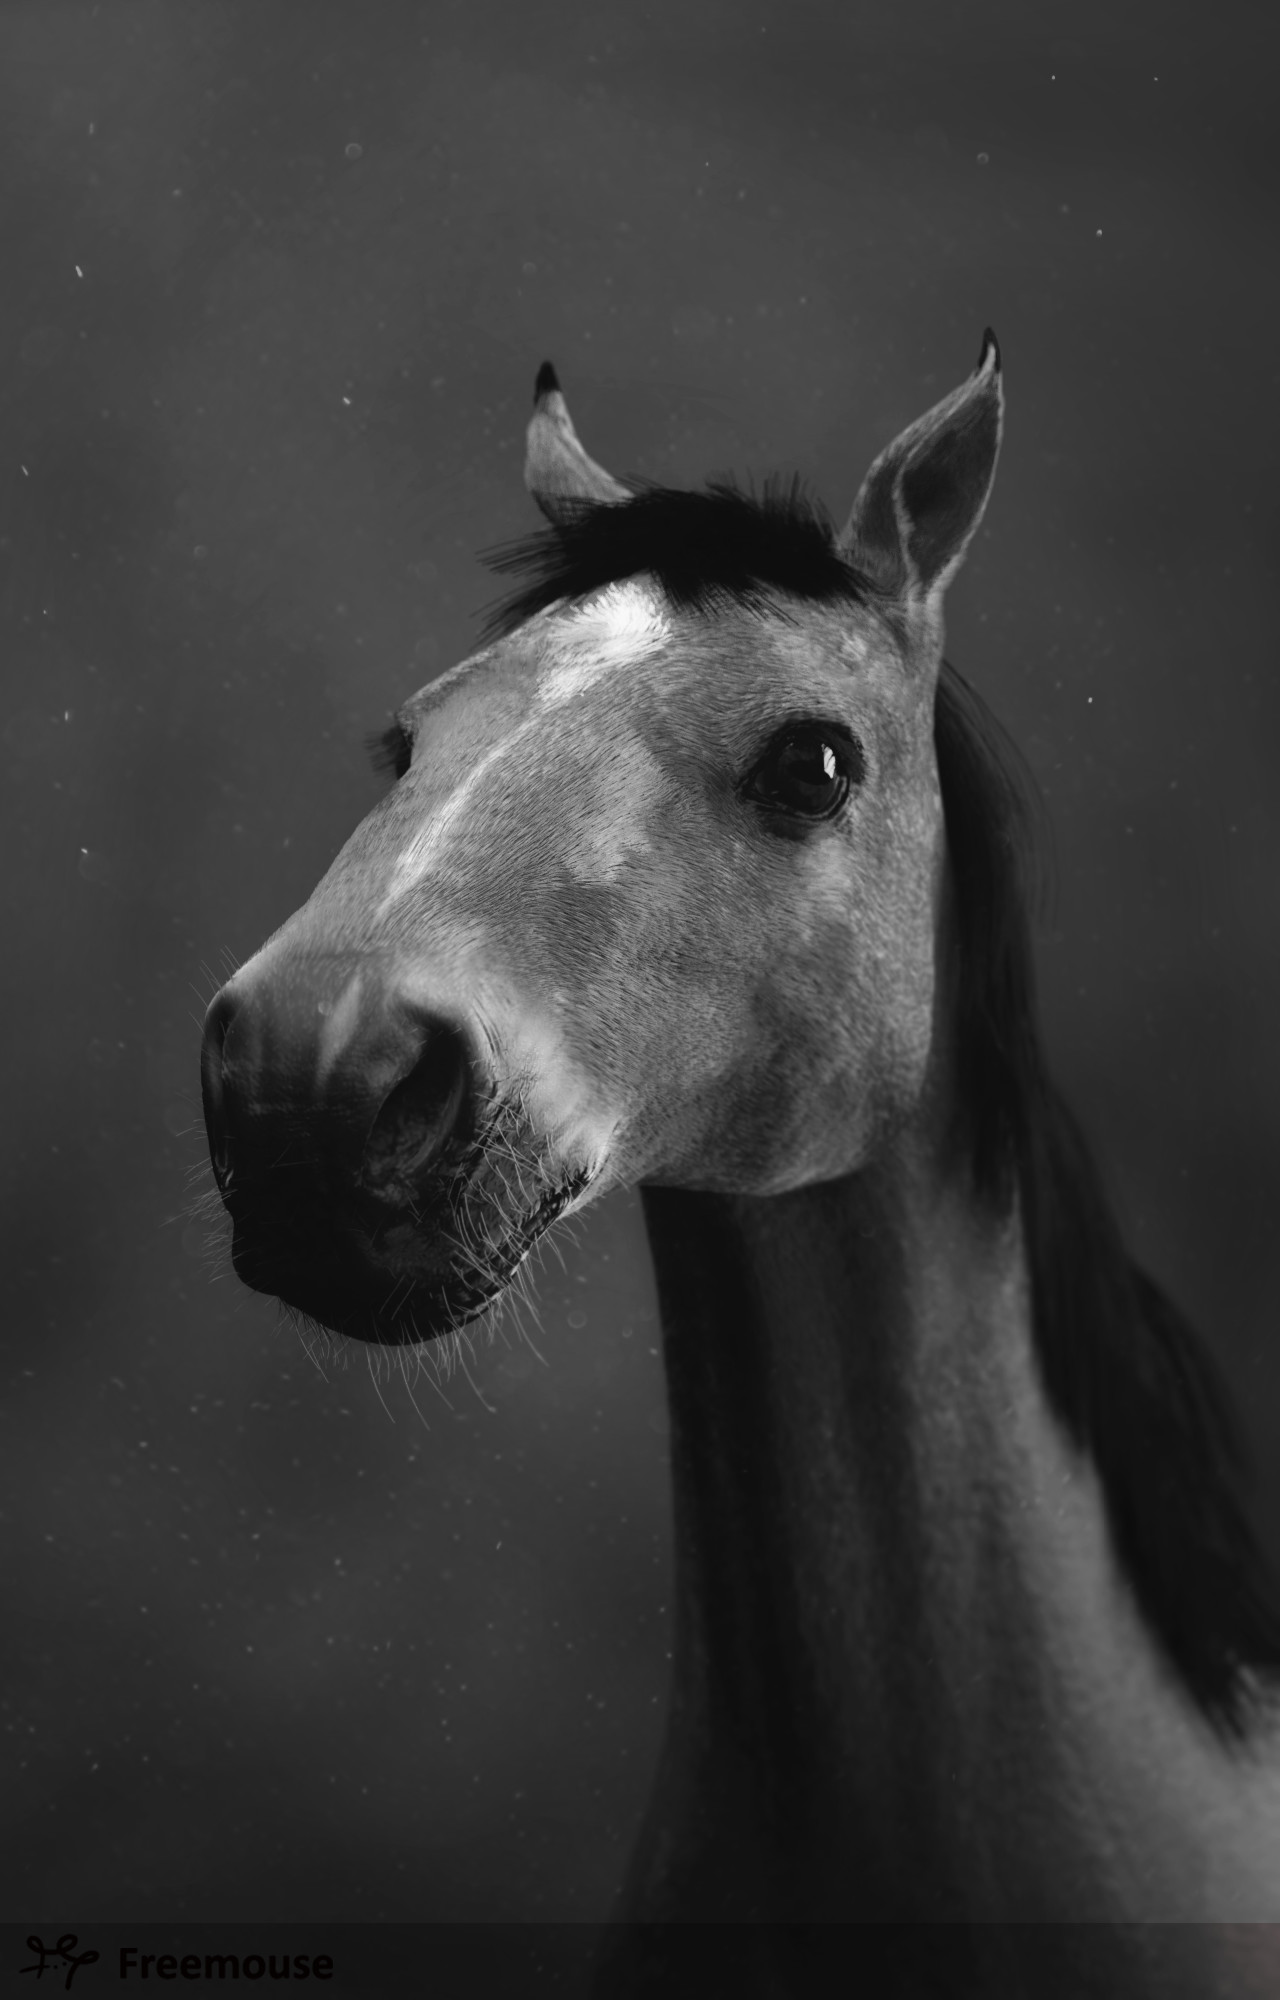 Anais barbeau sanction horse render02nb